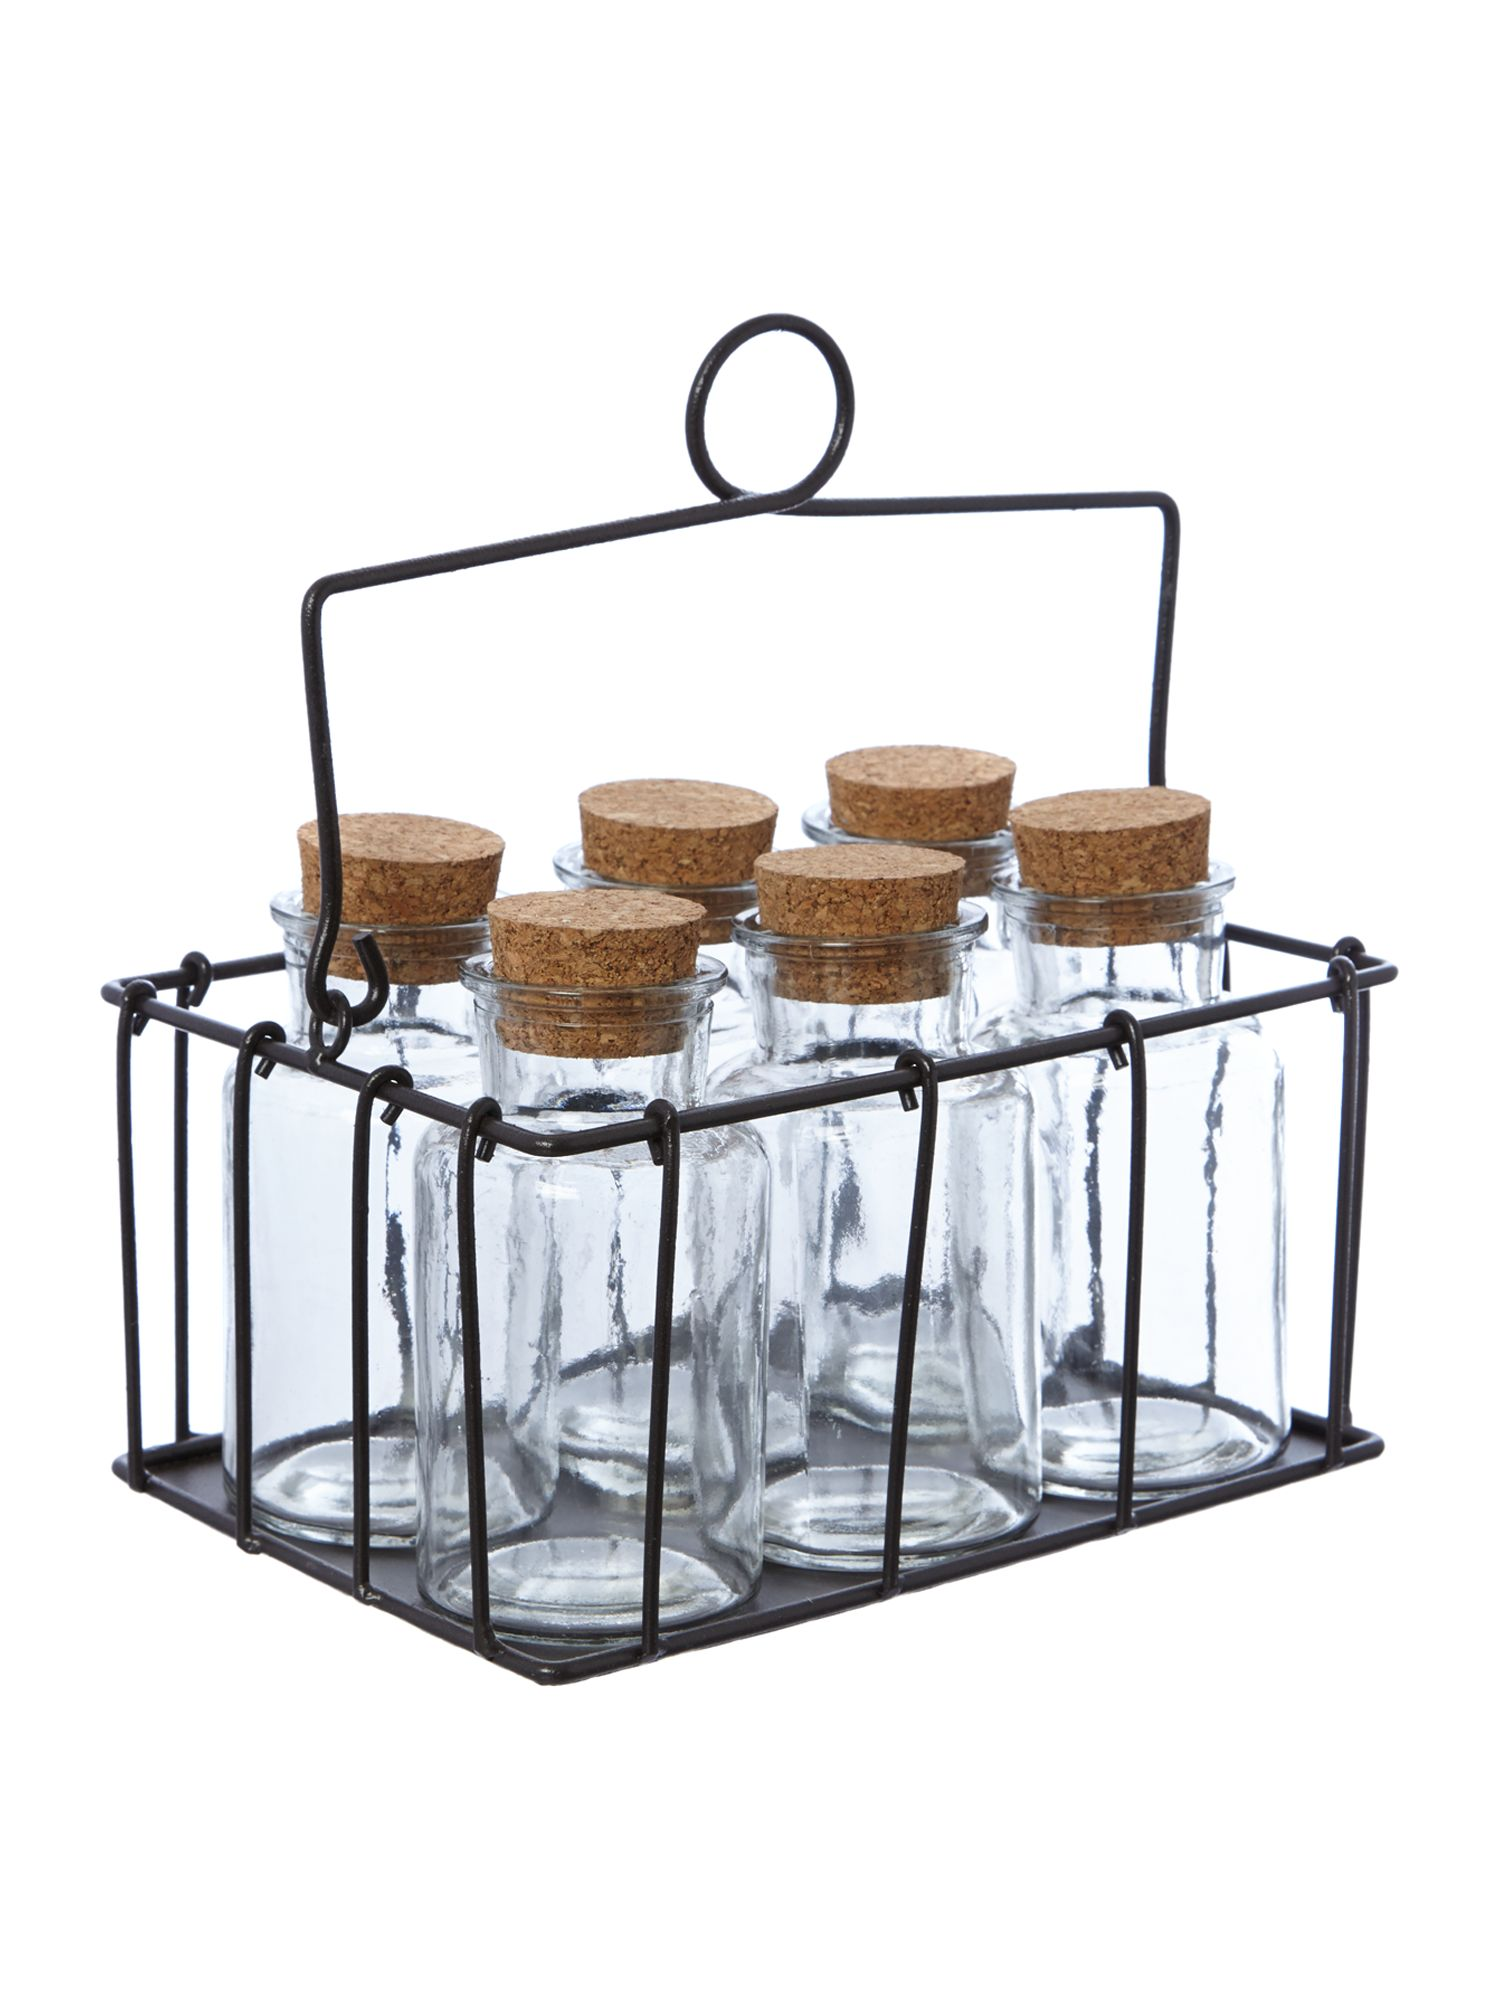 Spice bottles & rack